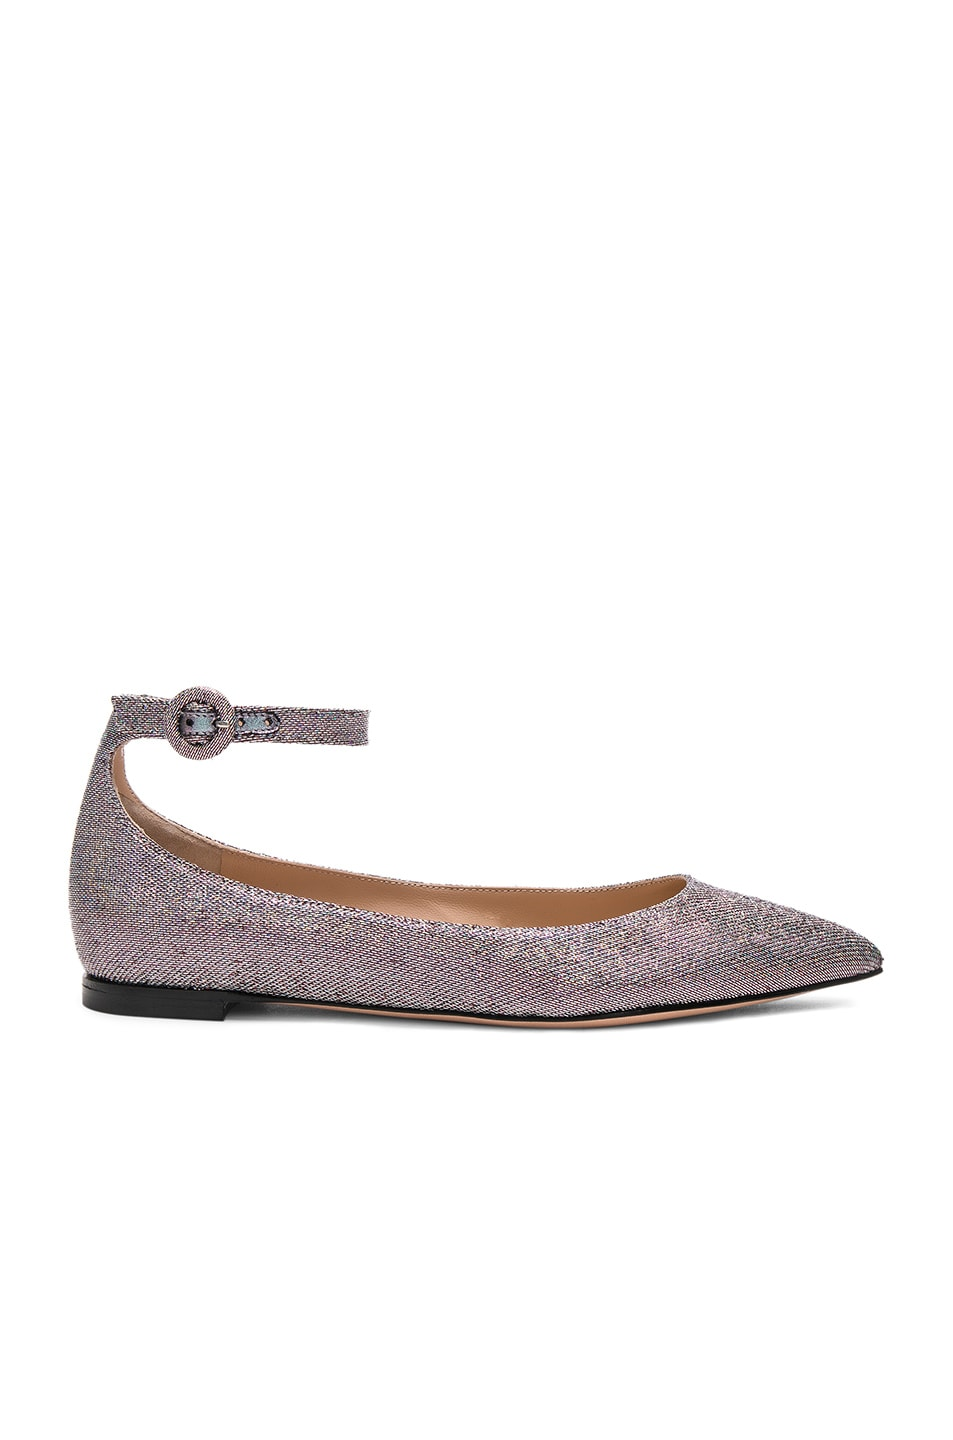 Image 1 of Gianvito Rossi Metallic Flats in Silver